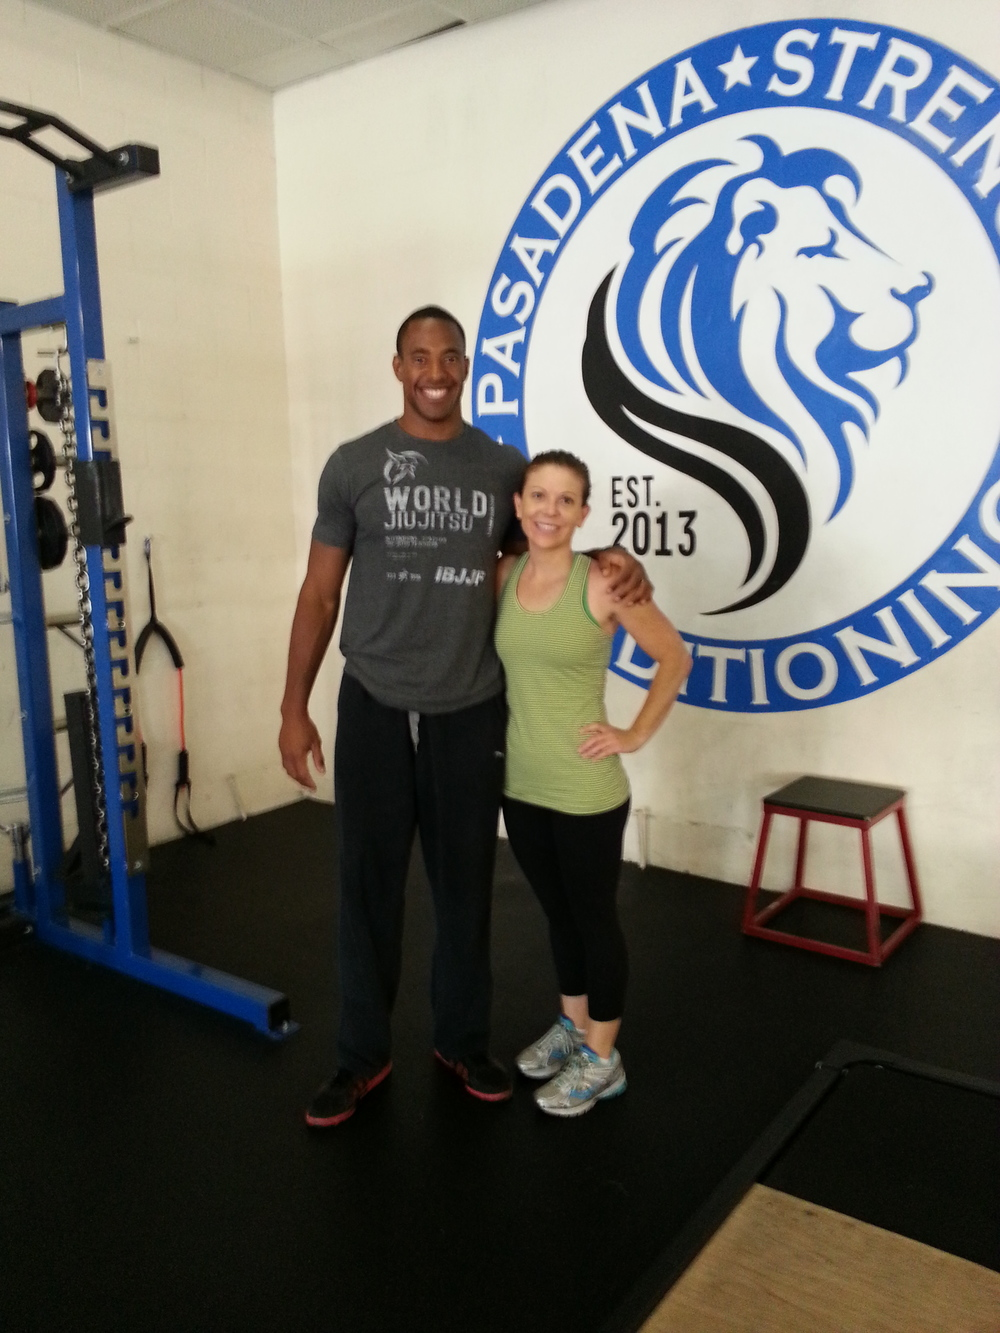 Amanda V. and I prior her workout to help kick off her 4th of July weekend